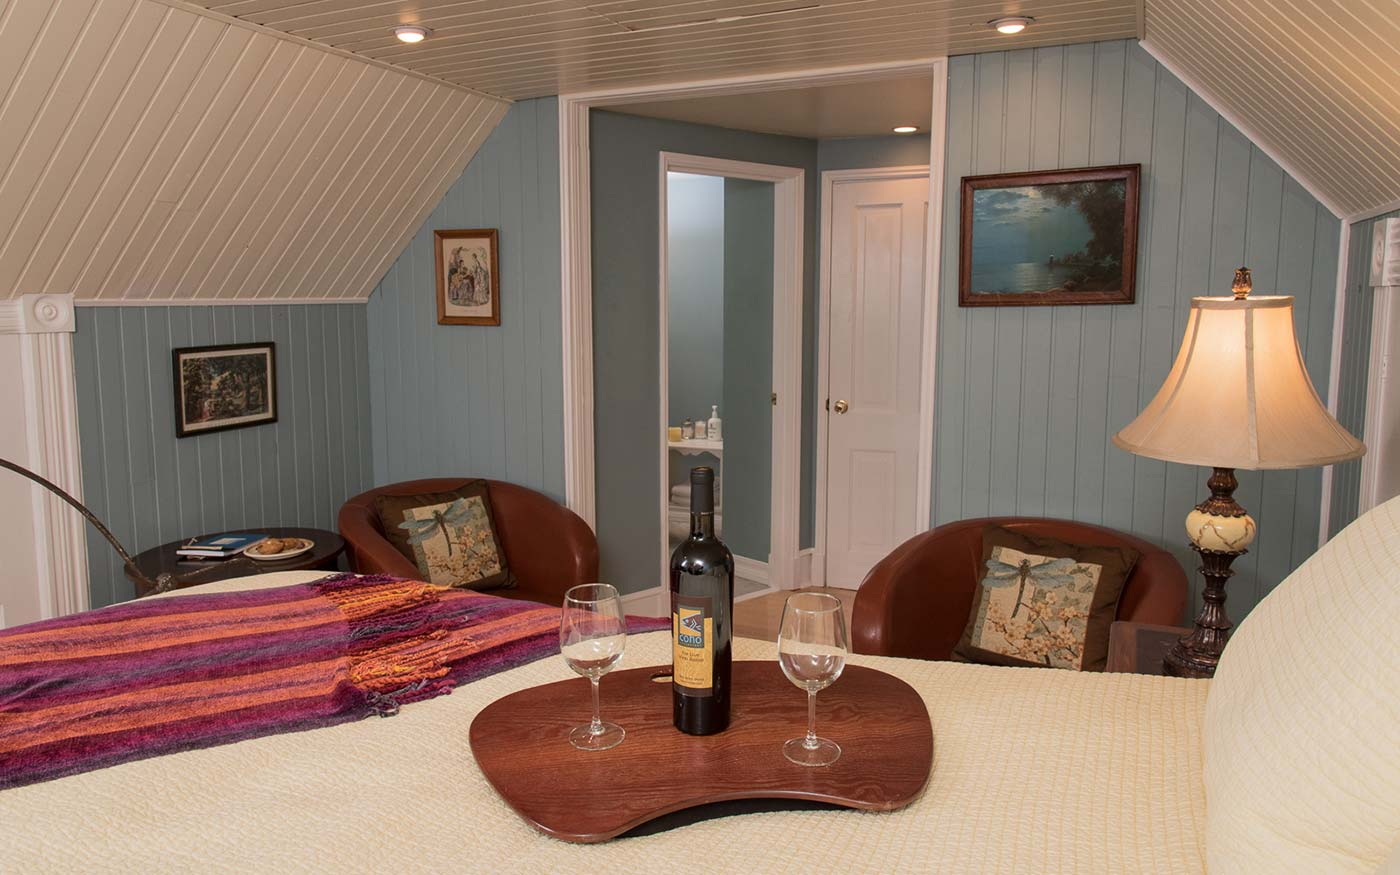 Enjoy cozy and romantic accommodations at our San Juan Island Bed and Breakfast